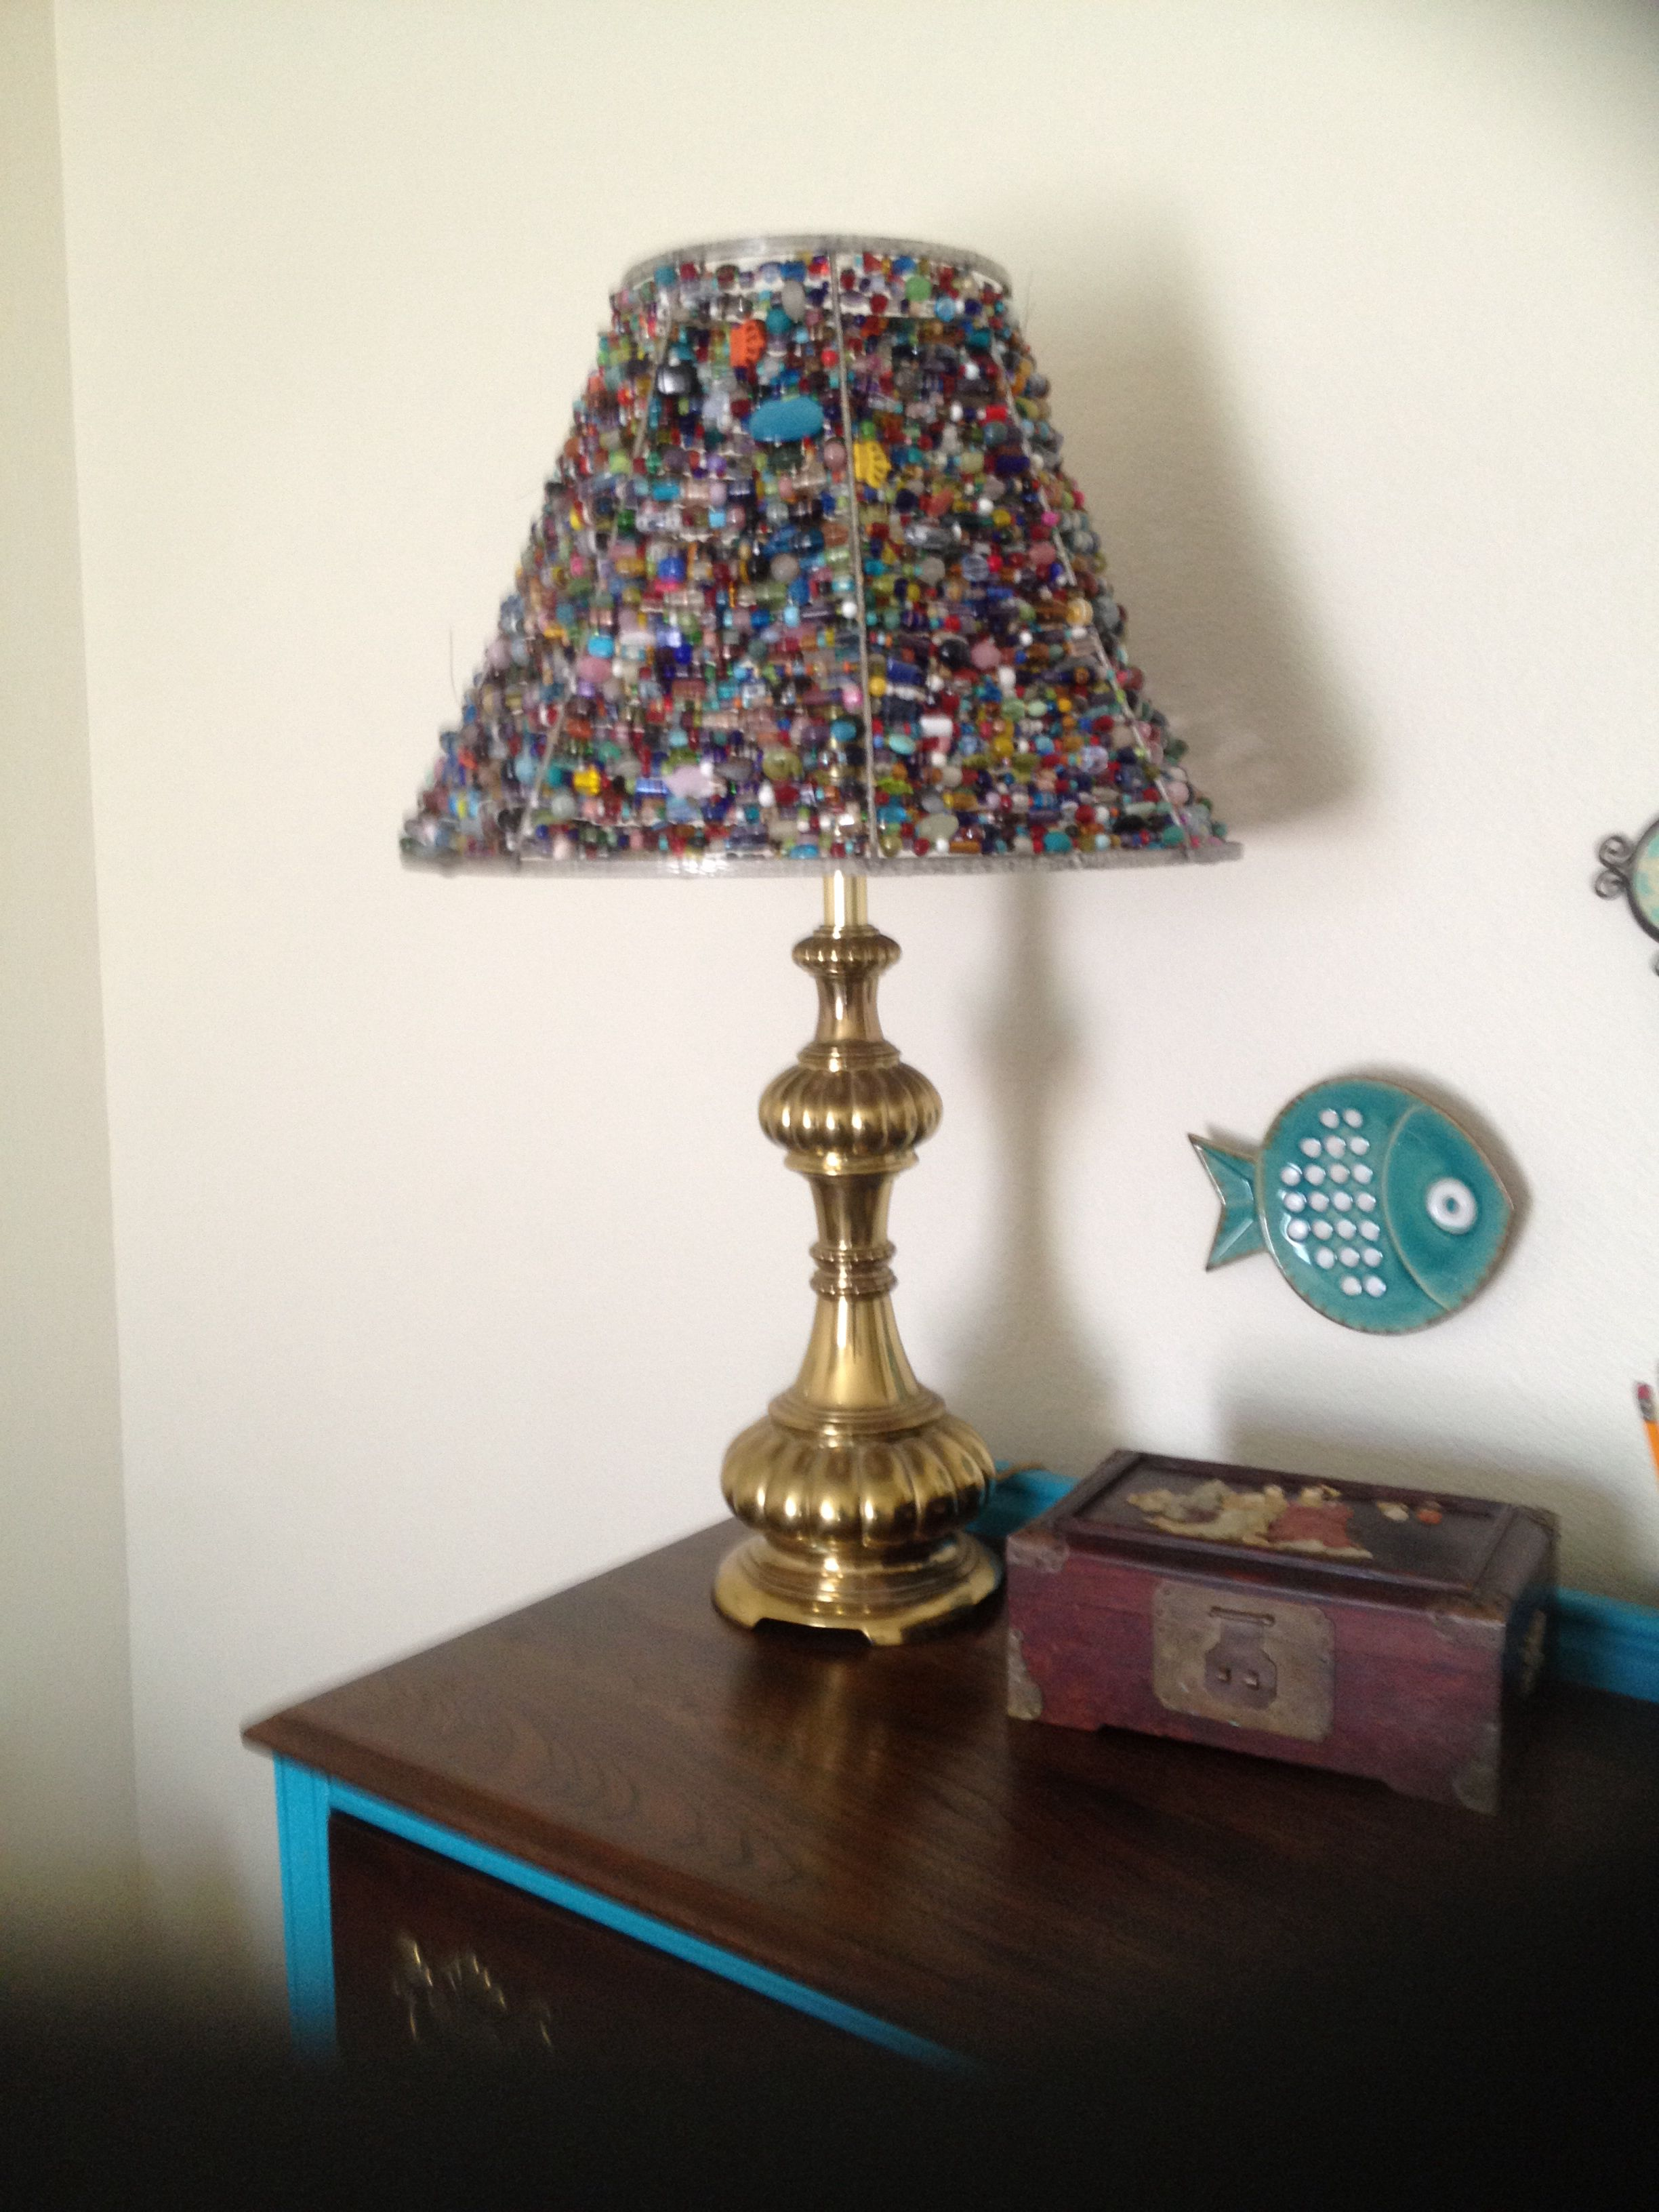 Beaded lampshade i made from an old lampshade wire frame and close beaded lampshade i made from an old lampshade wire frame and close to ten pounds of glass and stone beads i used heavy beading wire an crimp beads to keyboard keysfo Images